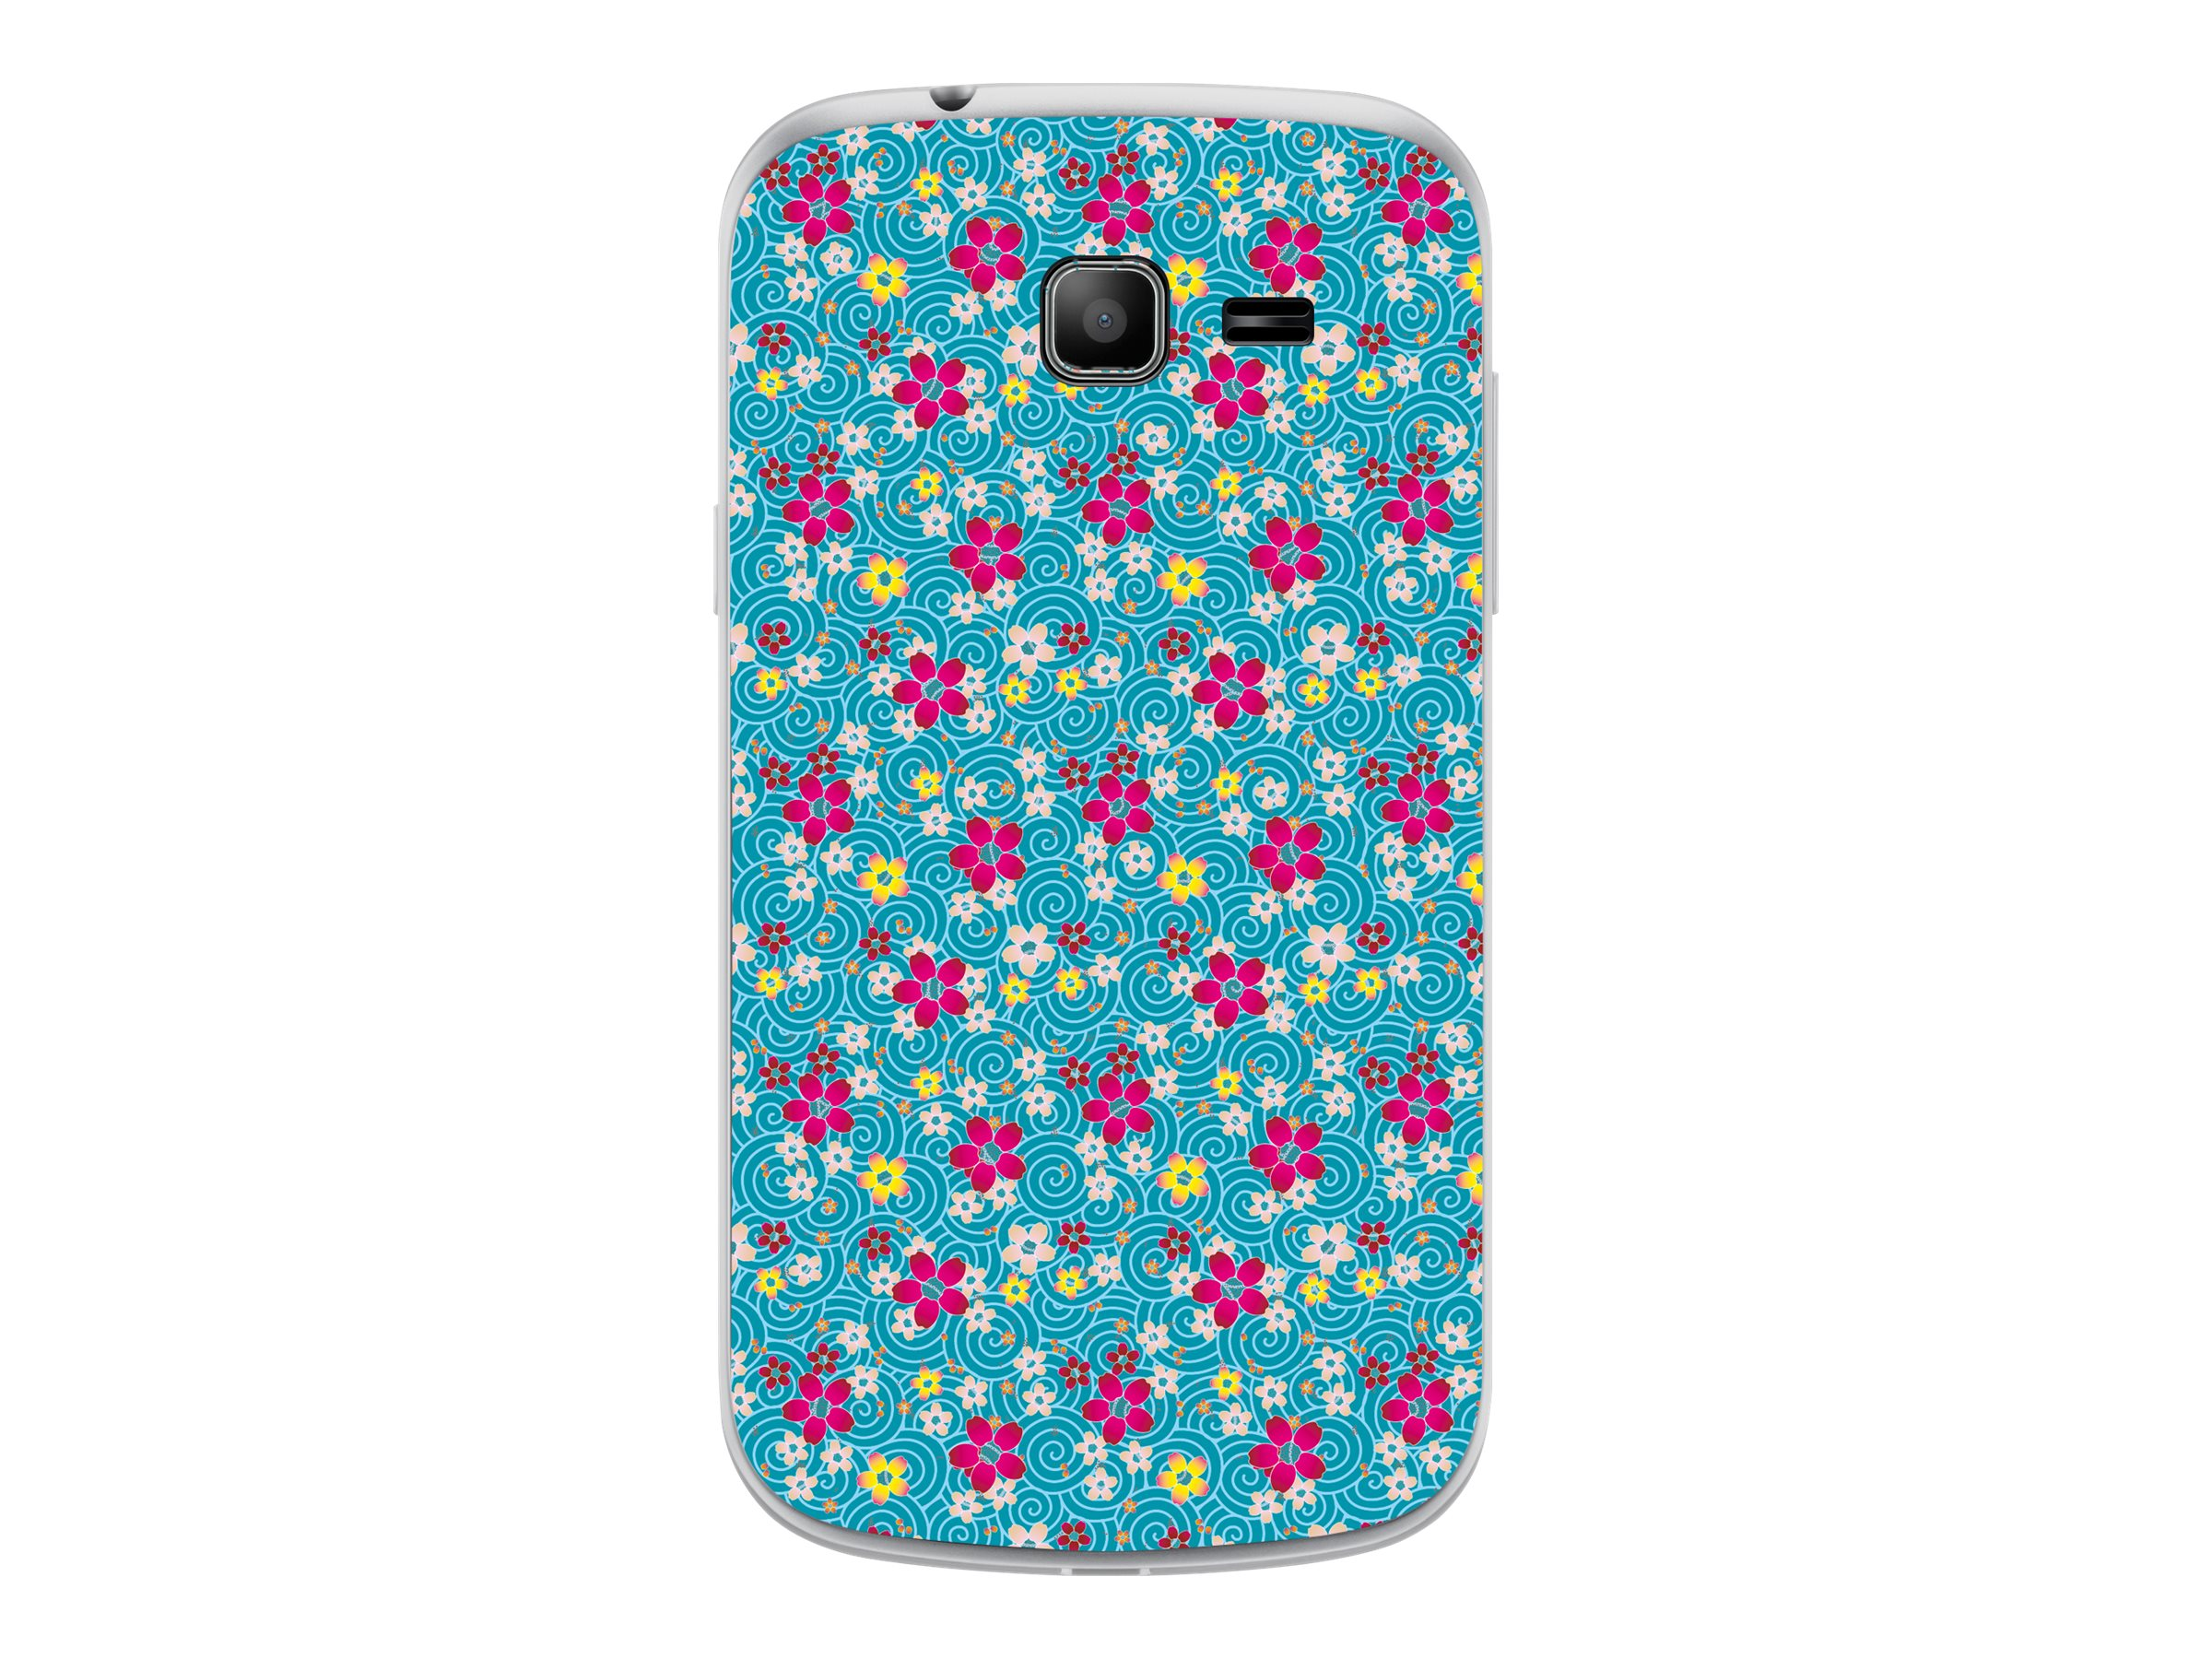 Muvit Customline Graphix Print - Coque de protection pour Samsung GALAXY Trend Lite - flower liberty transparent